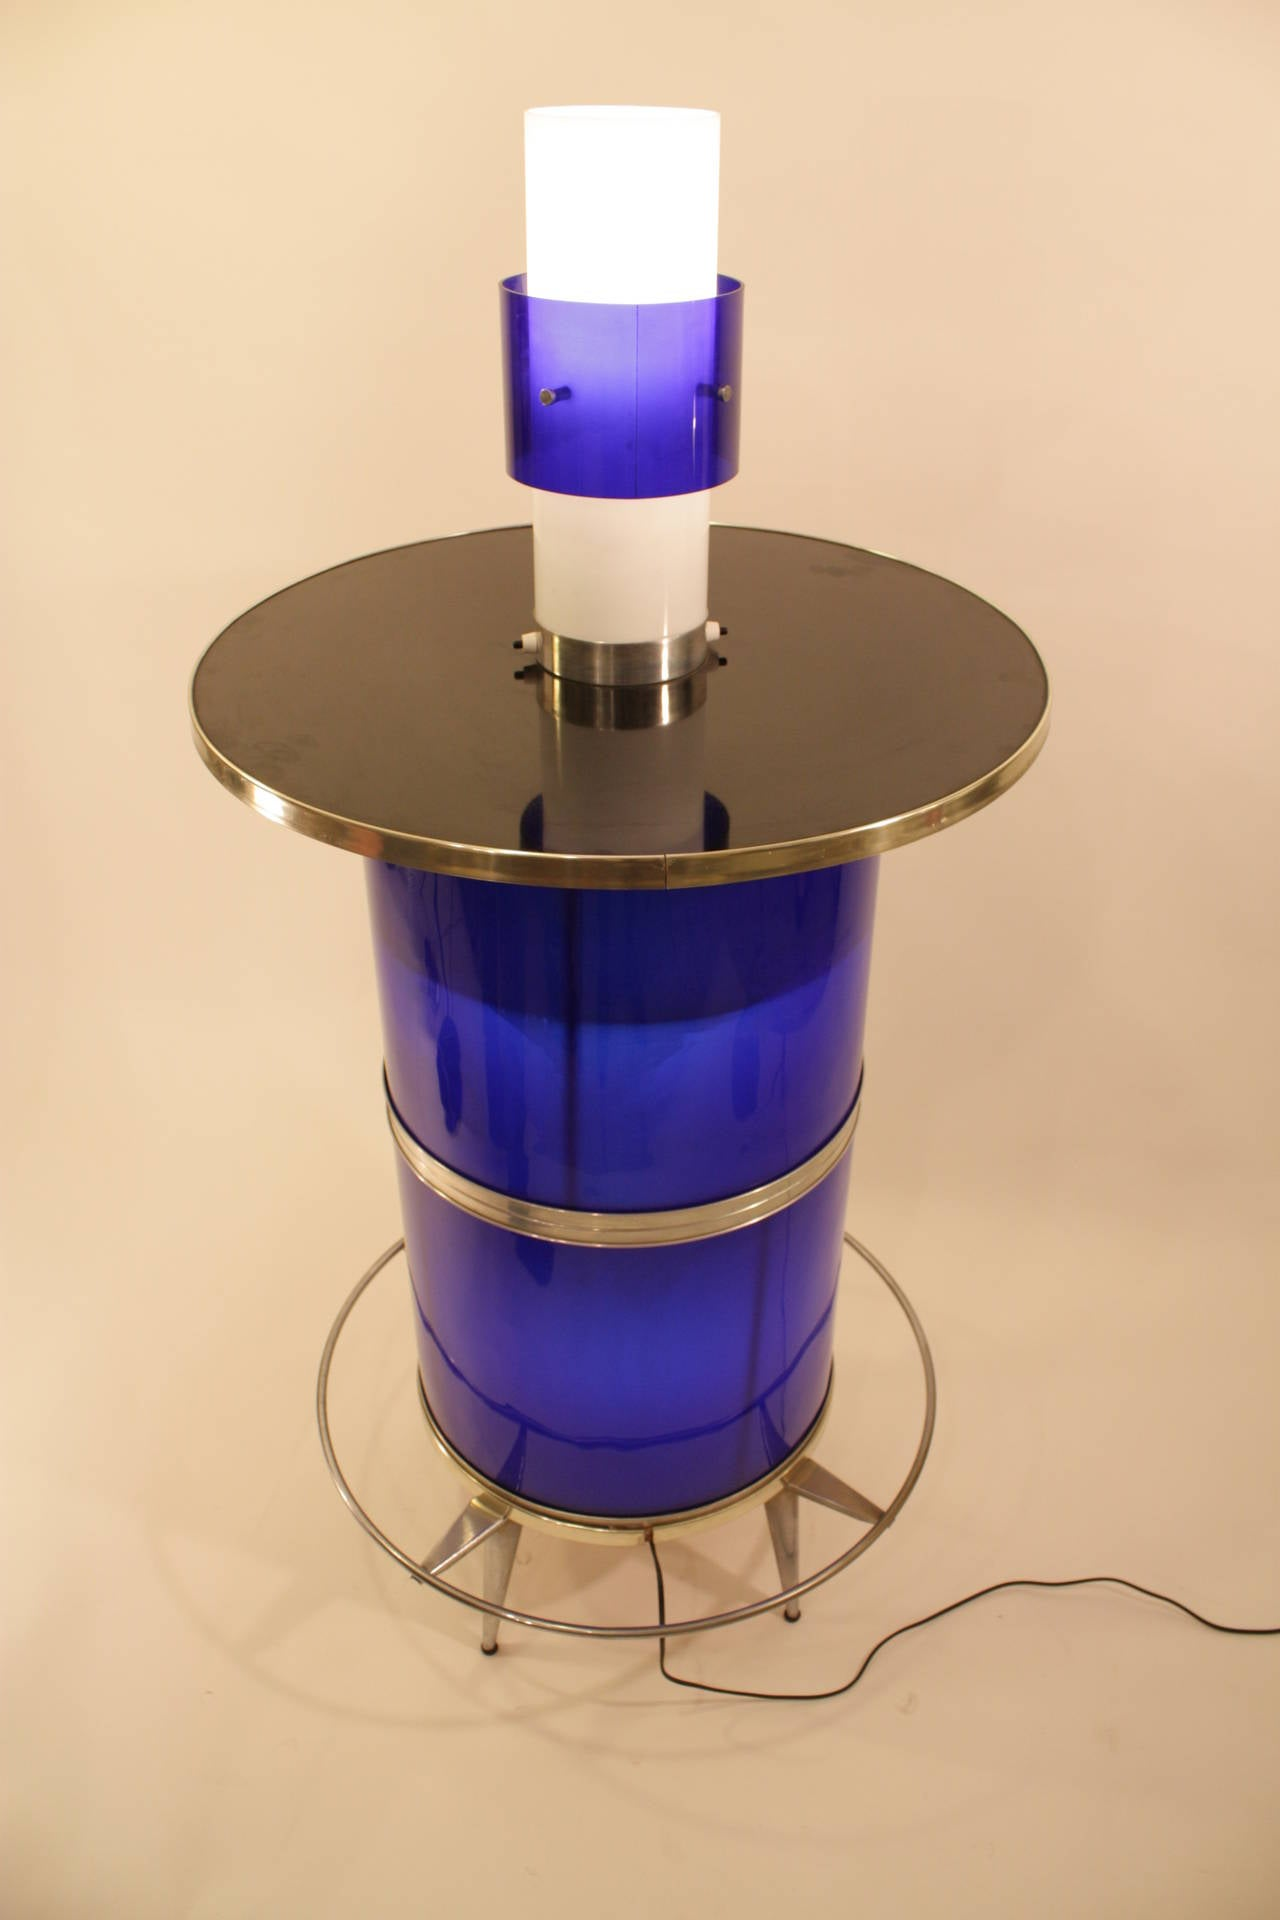 Spanish 1960s Space Age Blue and White Plexiglass Cocktails Bar with Table Lamp 10